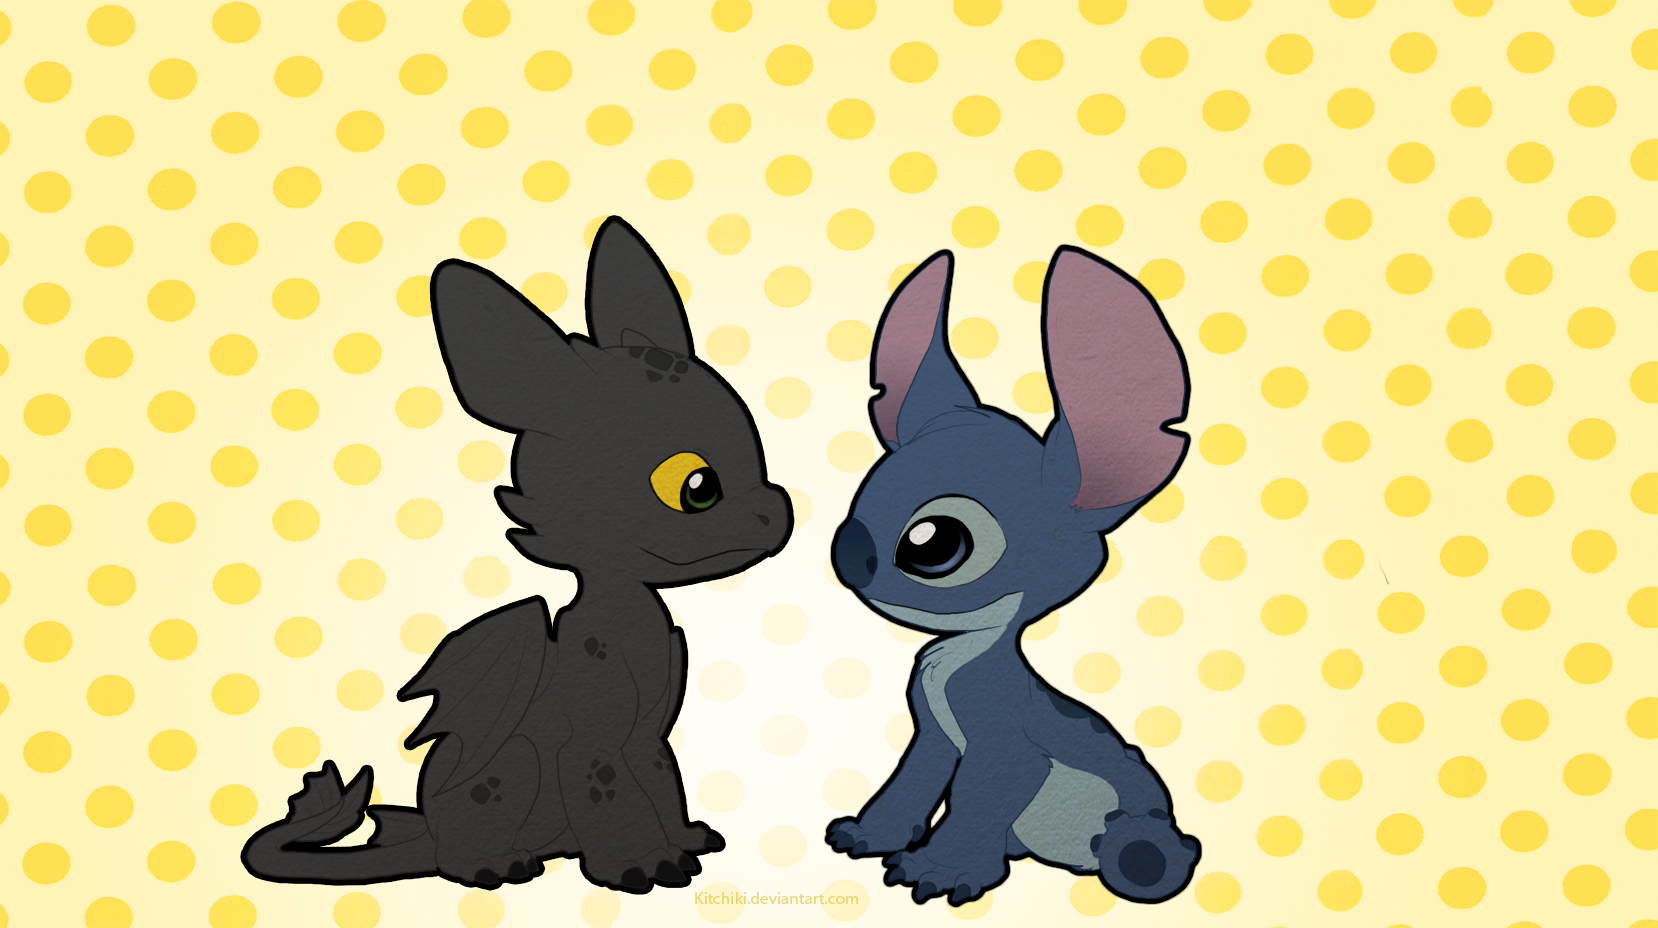 Stitch And Toothless By Kitchiki.deviantart.com On